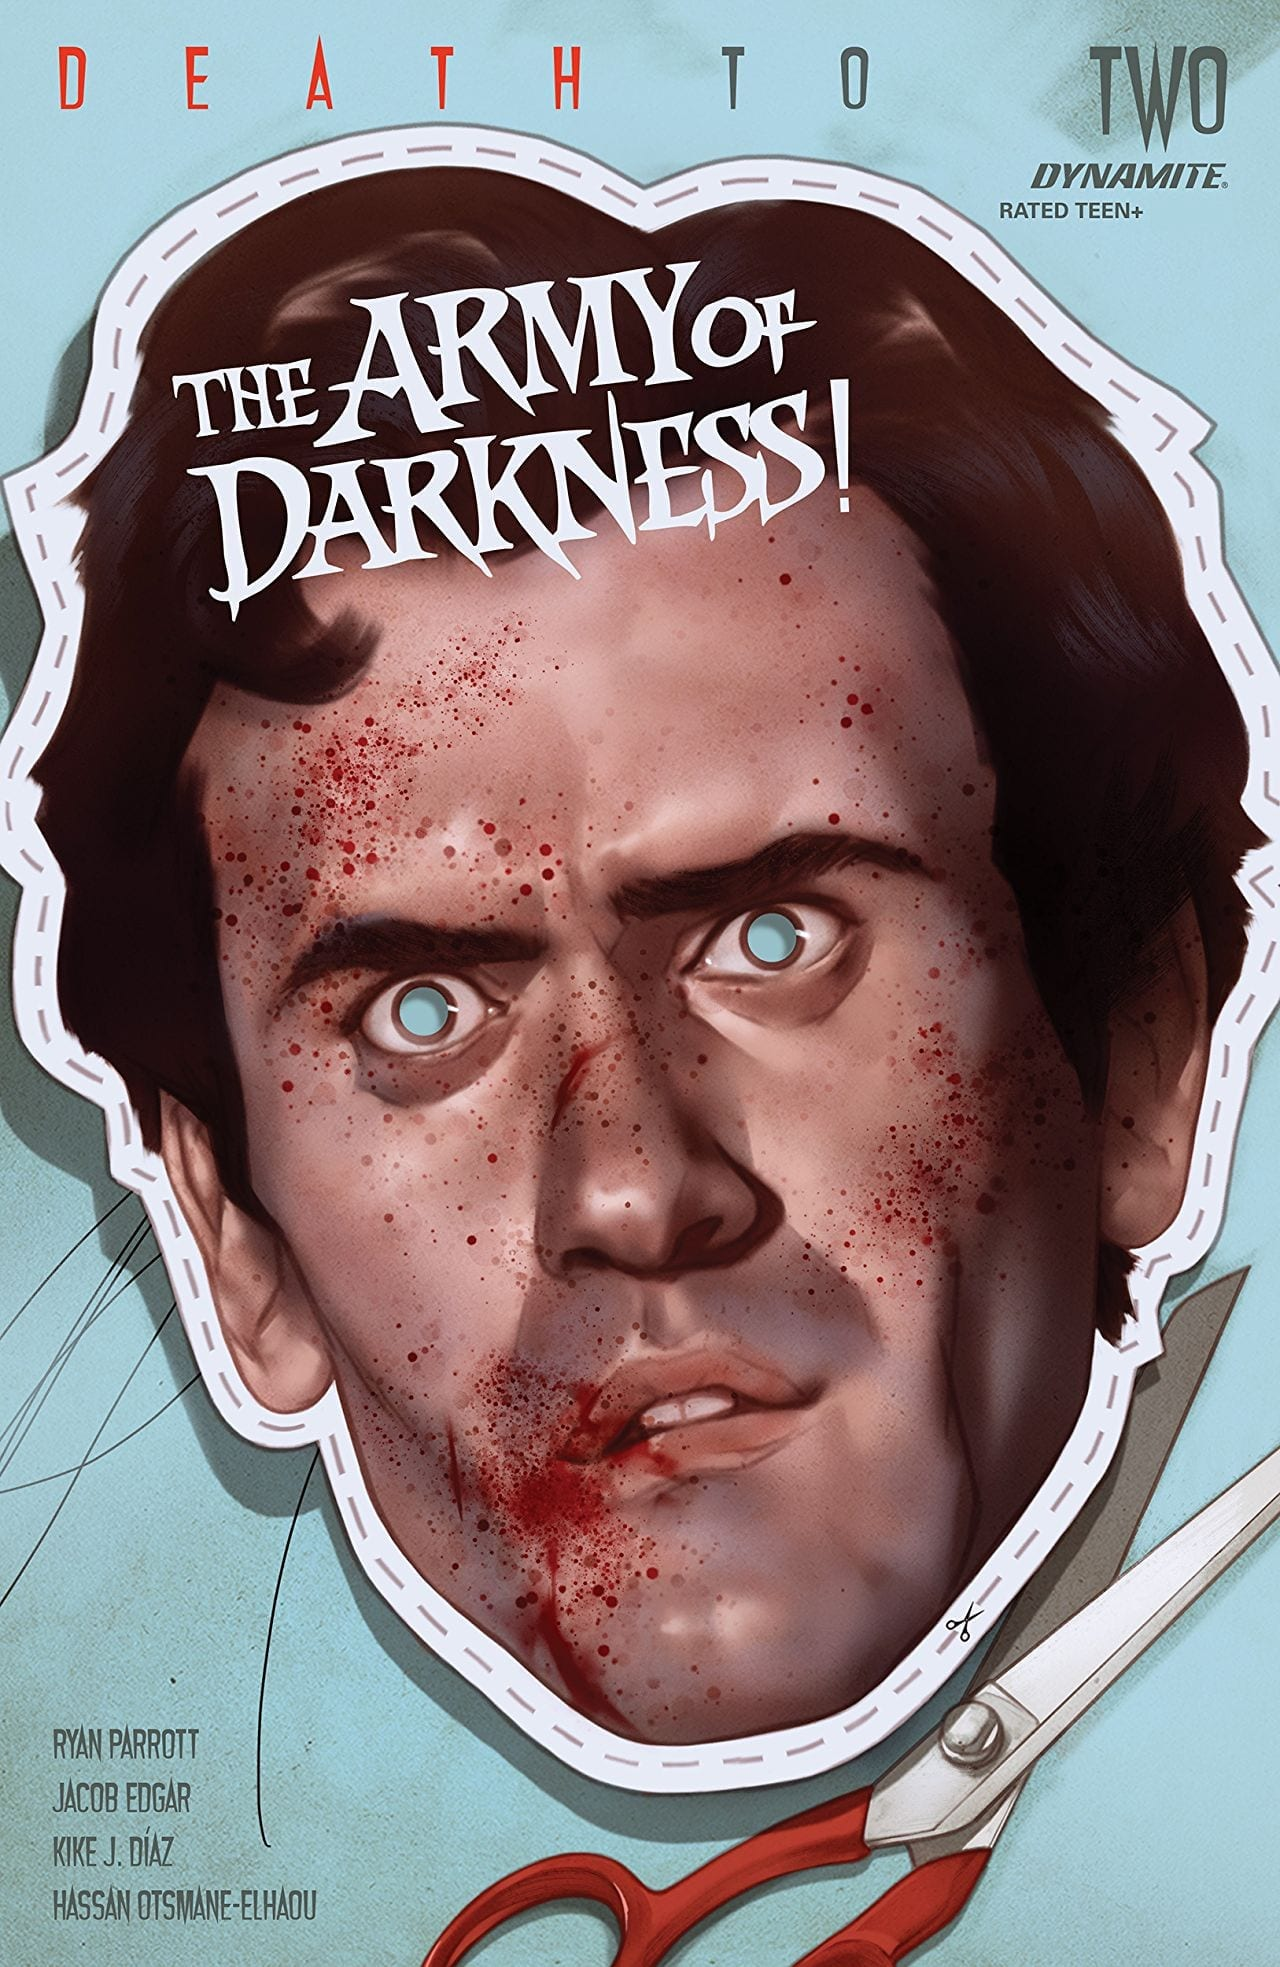 Who doesn't want a face full of Ash? Death to The Army of Darkness #2 COVER